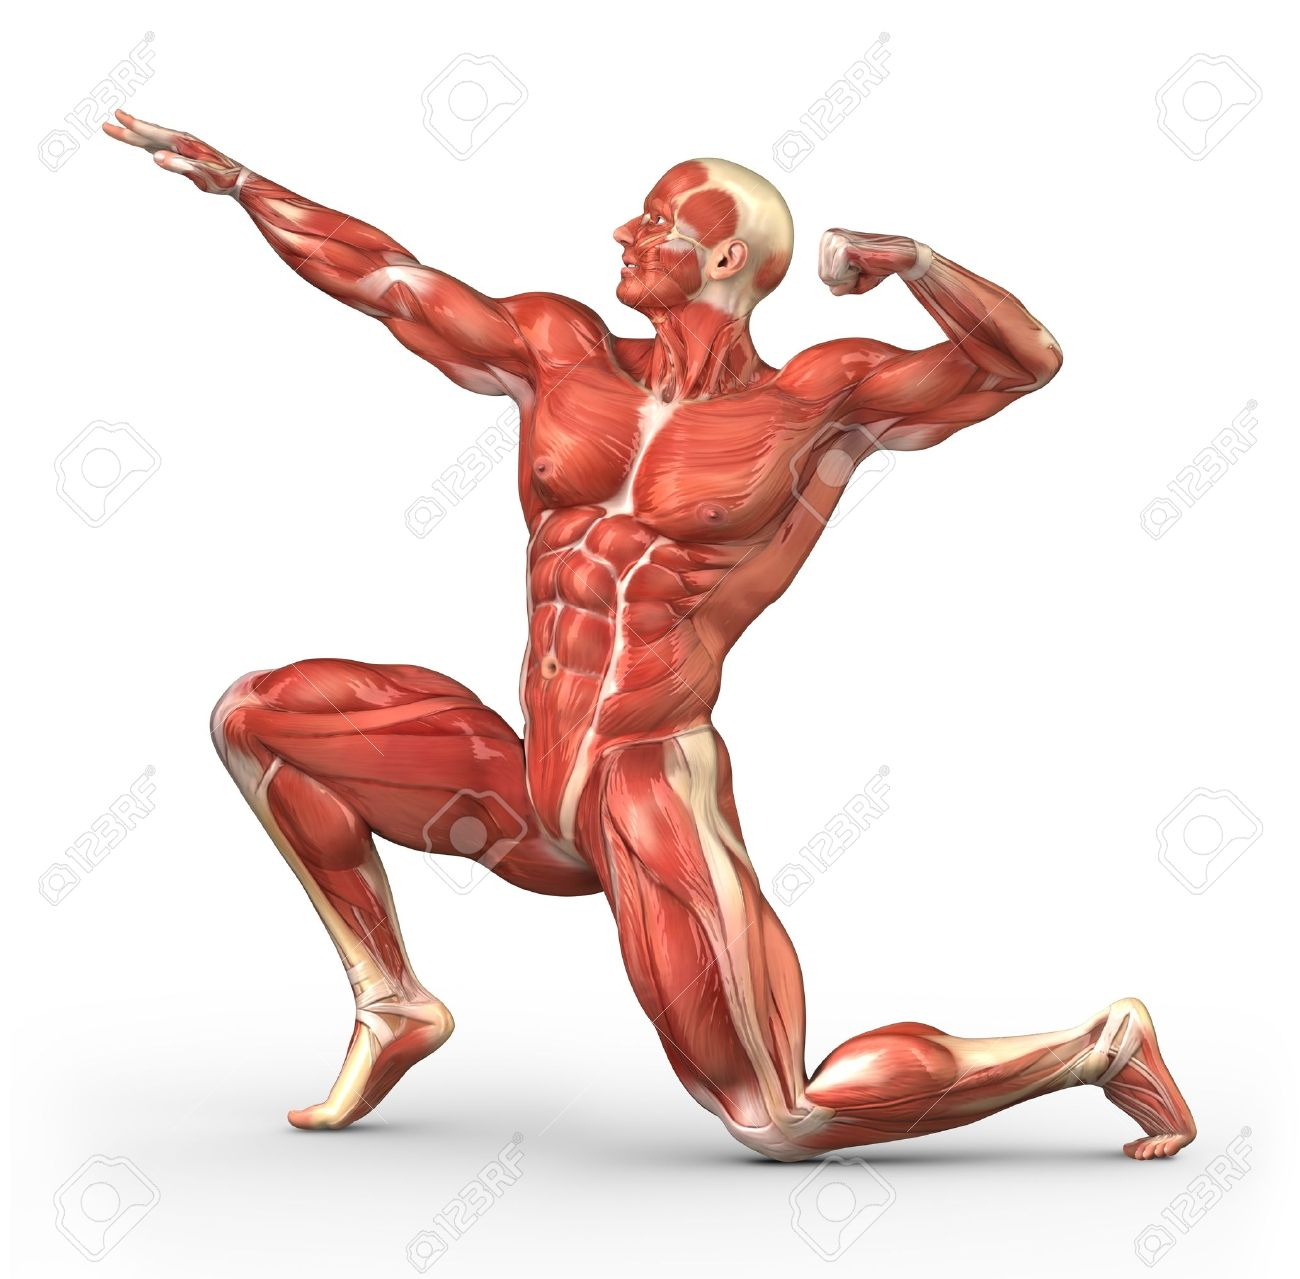 flexor muscle stock photos images. royalty free flexor muscle, Muscles